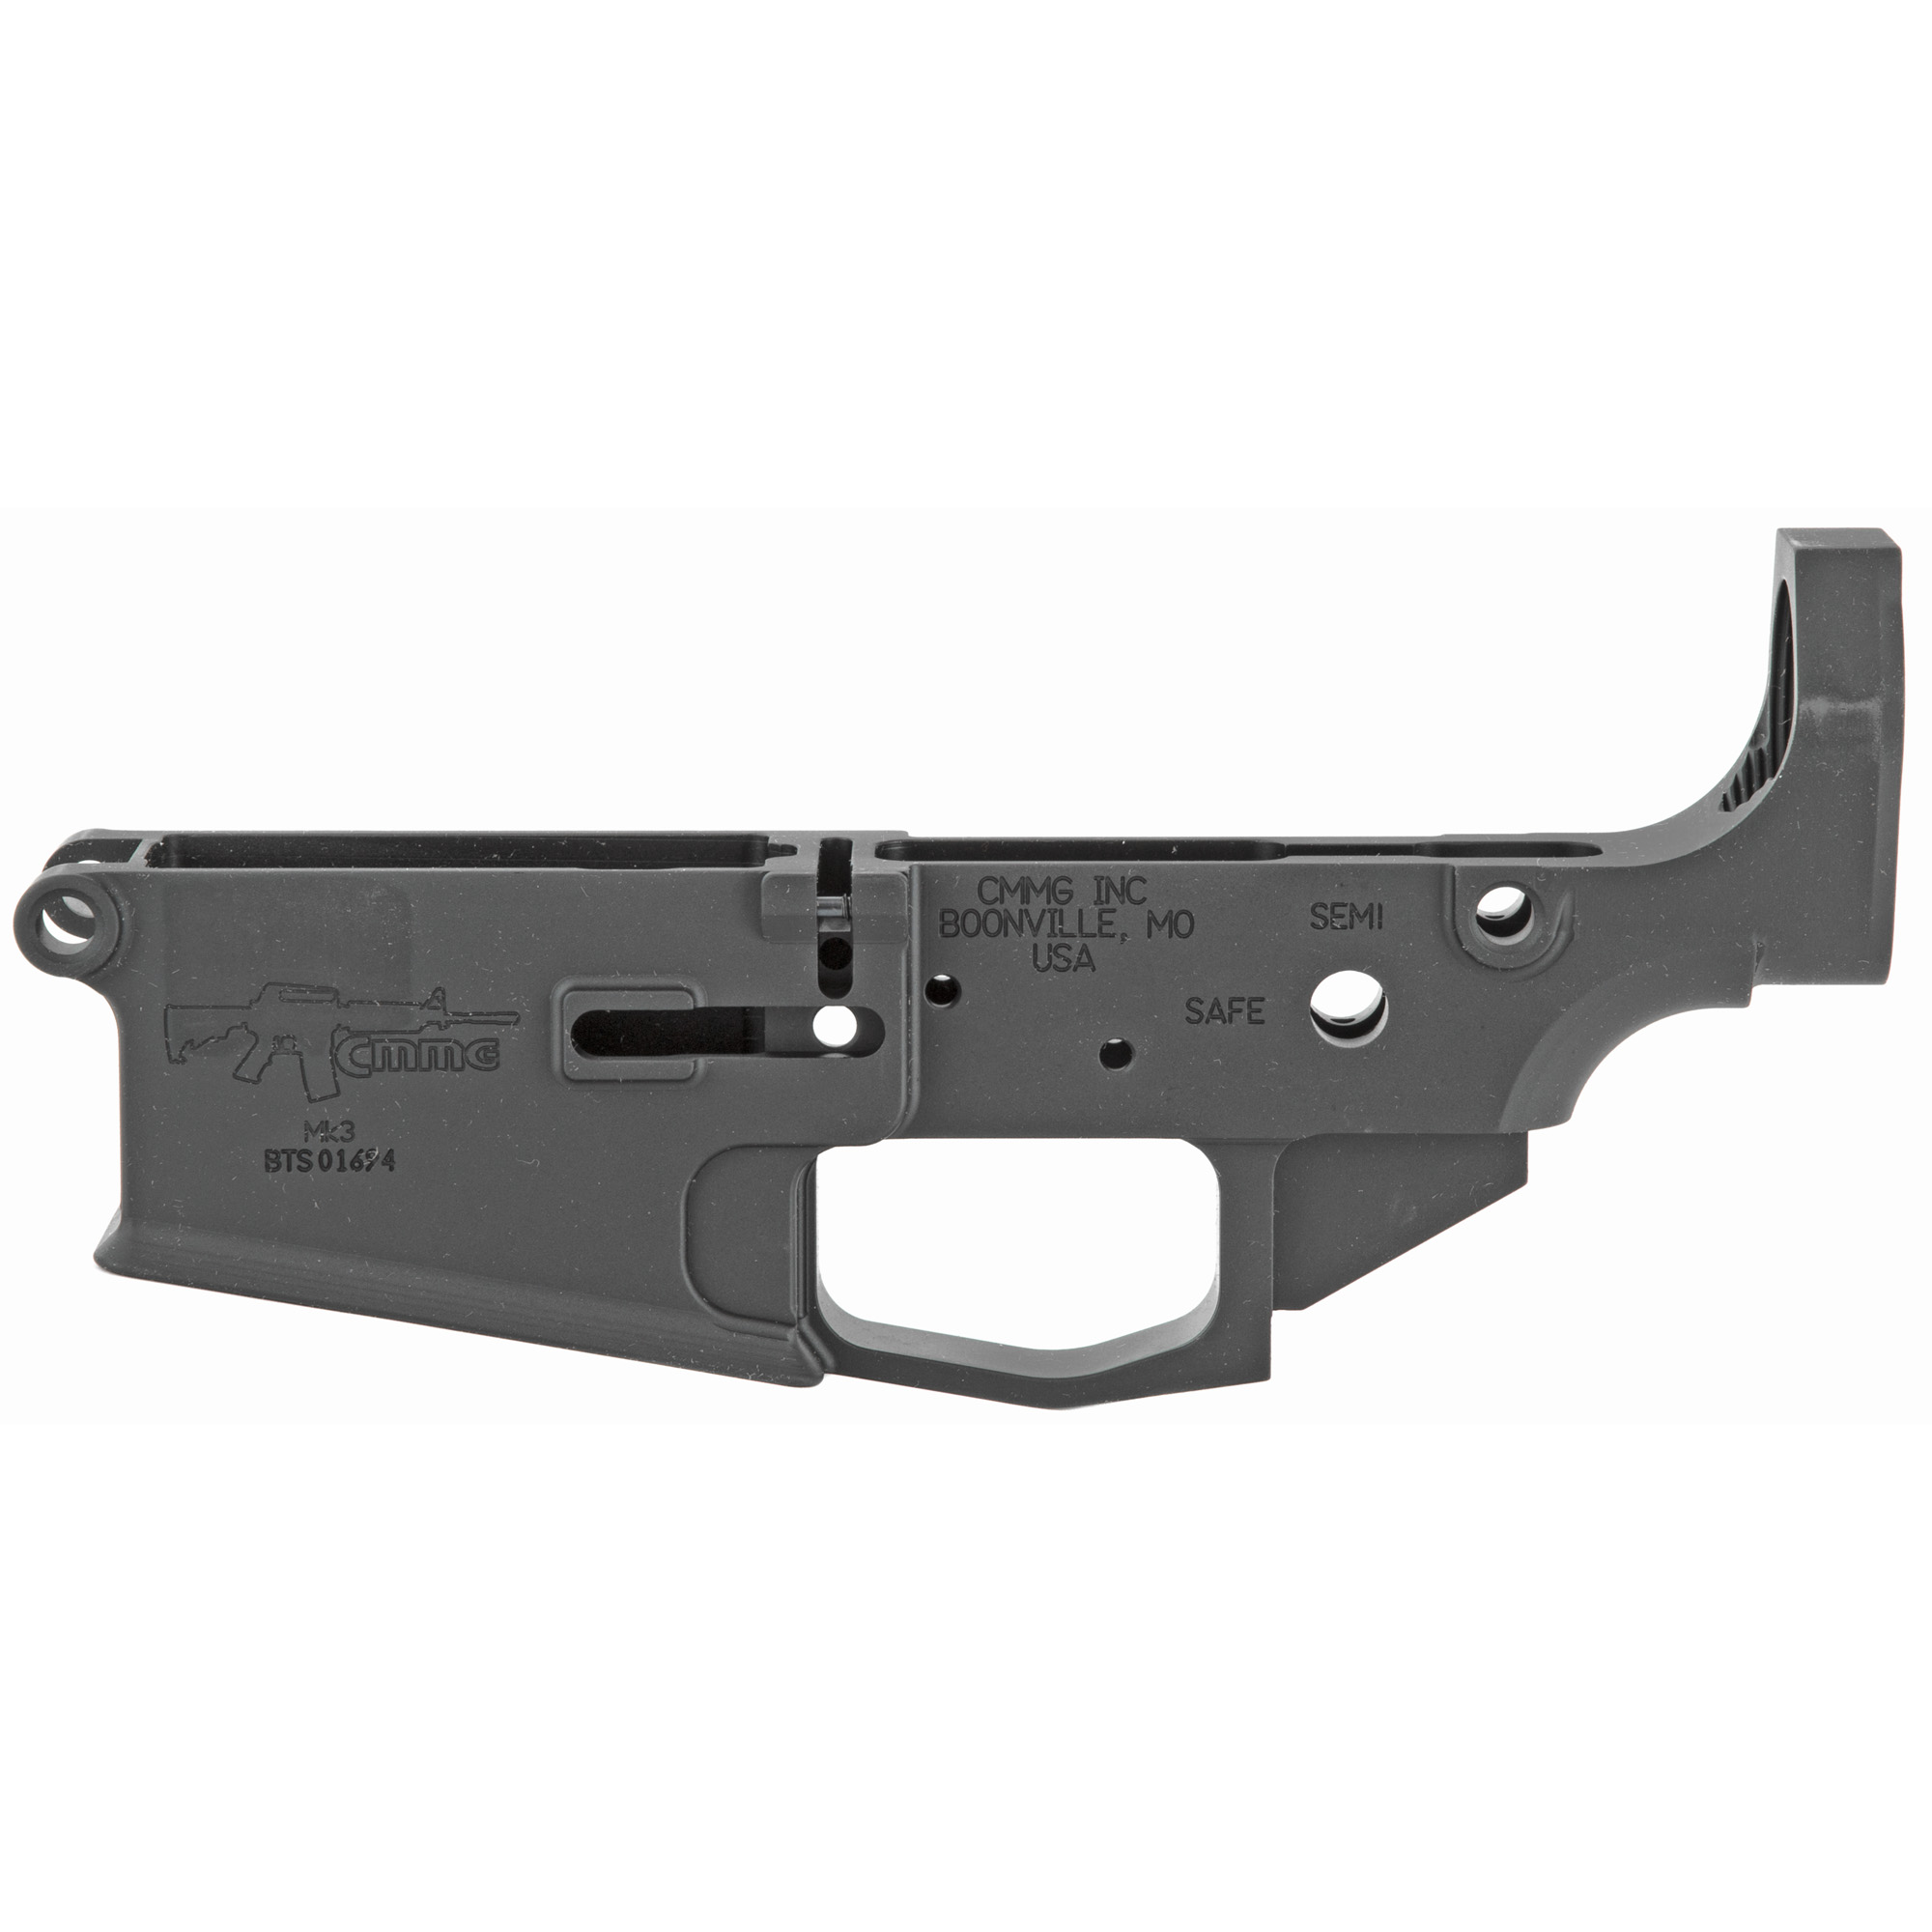 Combine this Mk3 lower with a Mk3 lower parts kit and buttstock kit to build your favorite lower group.